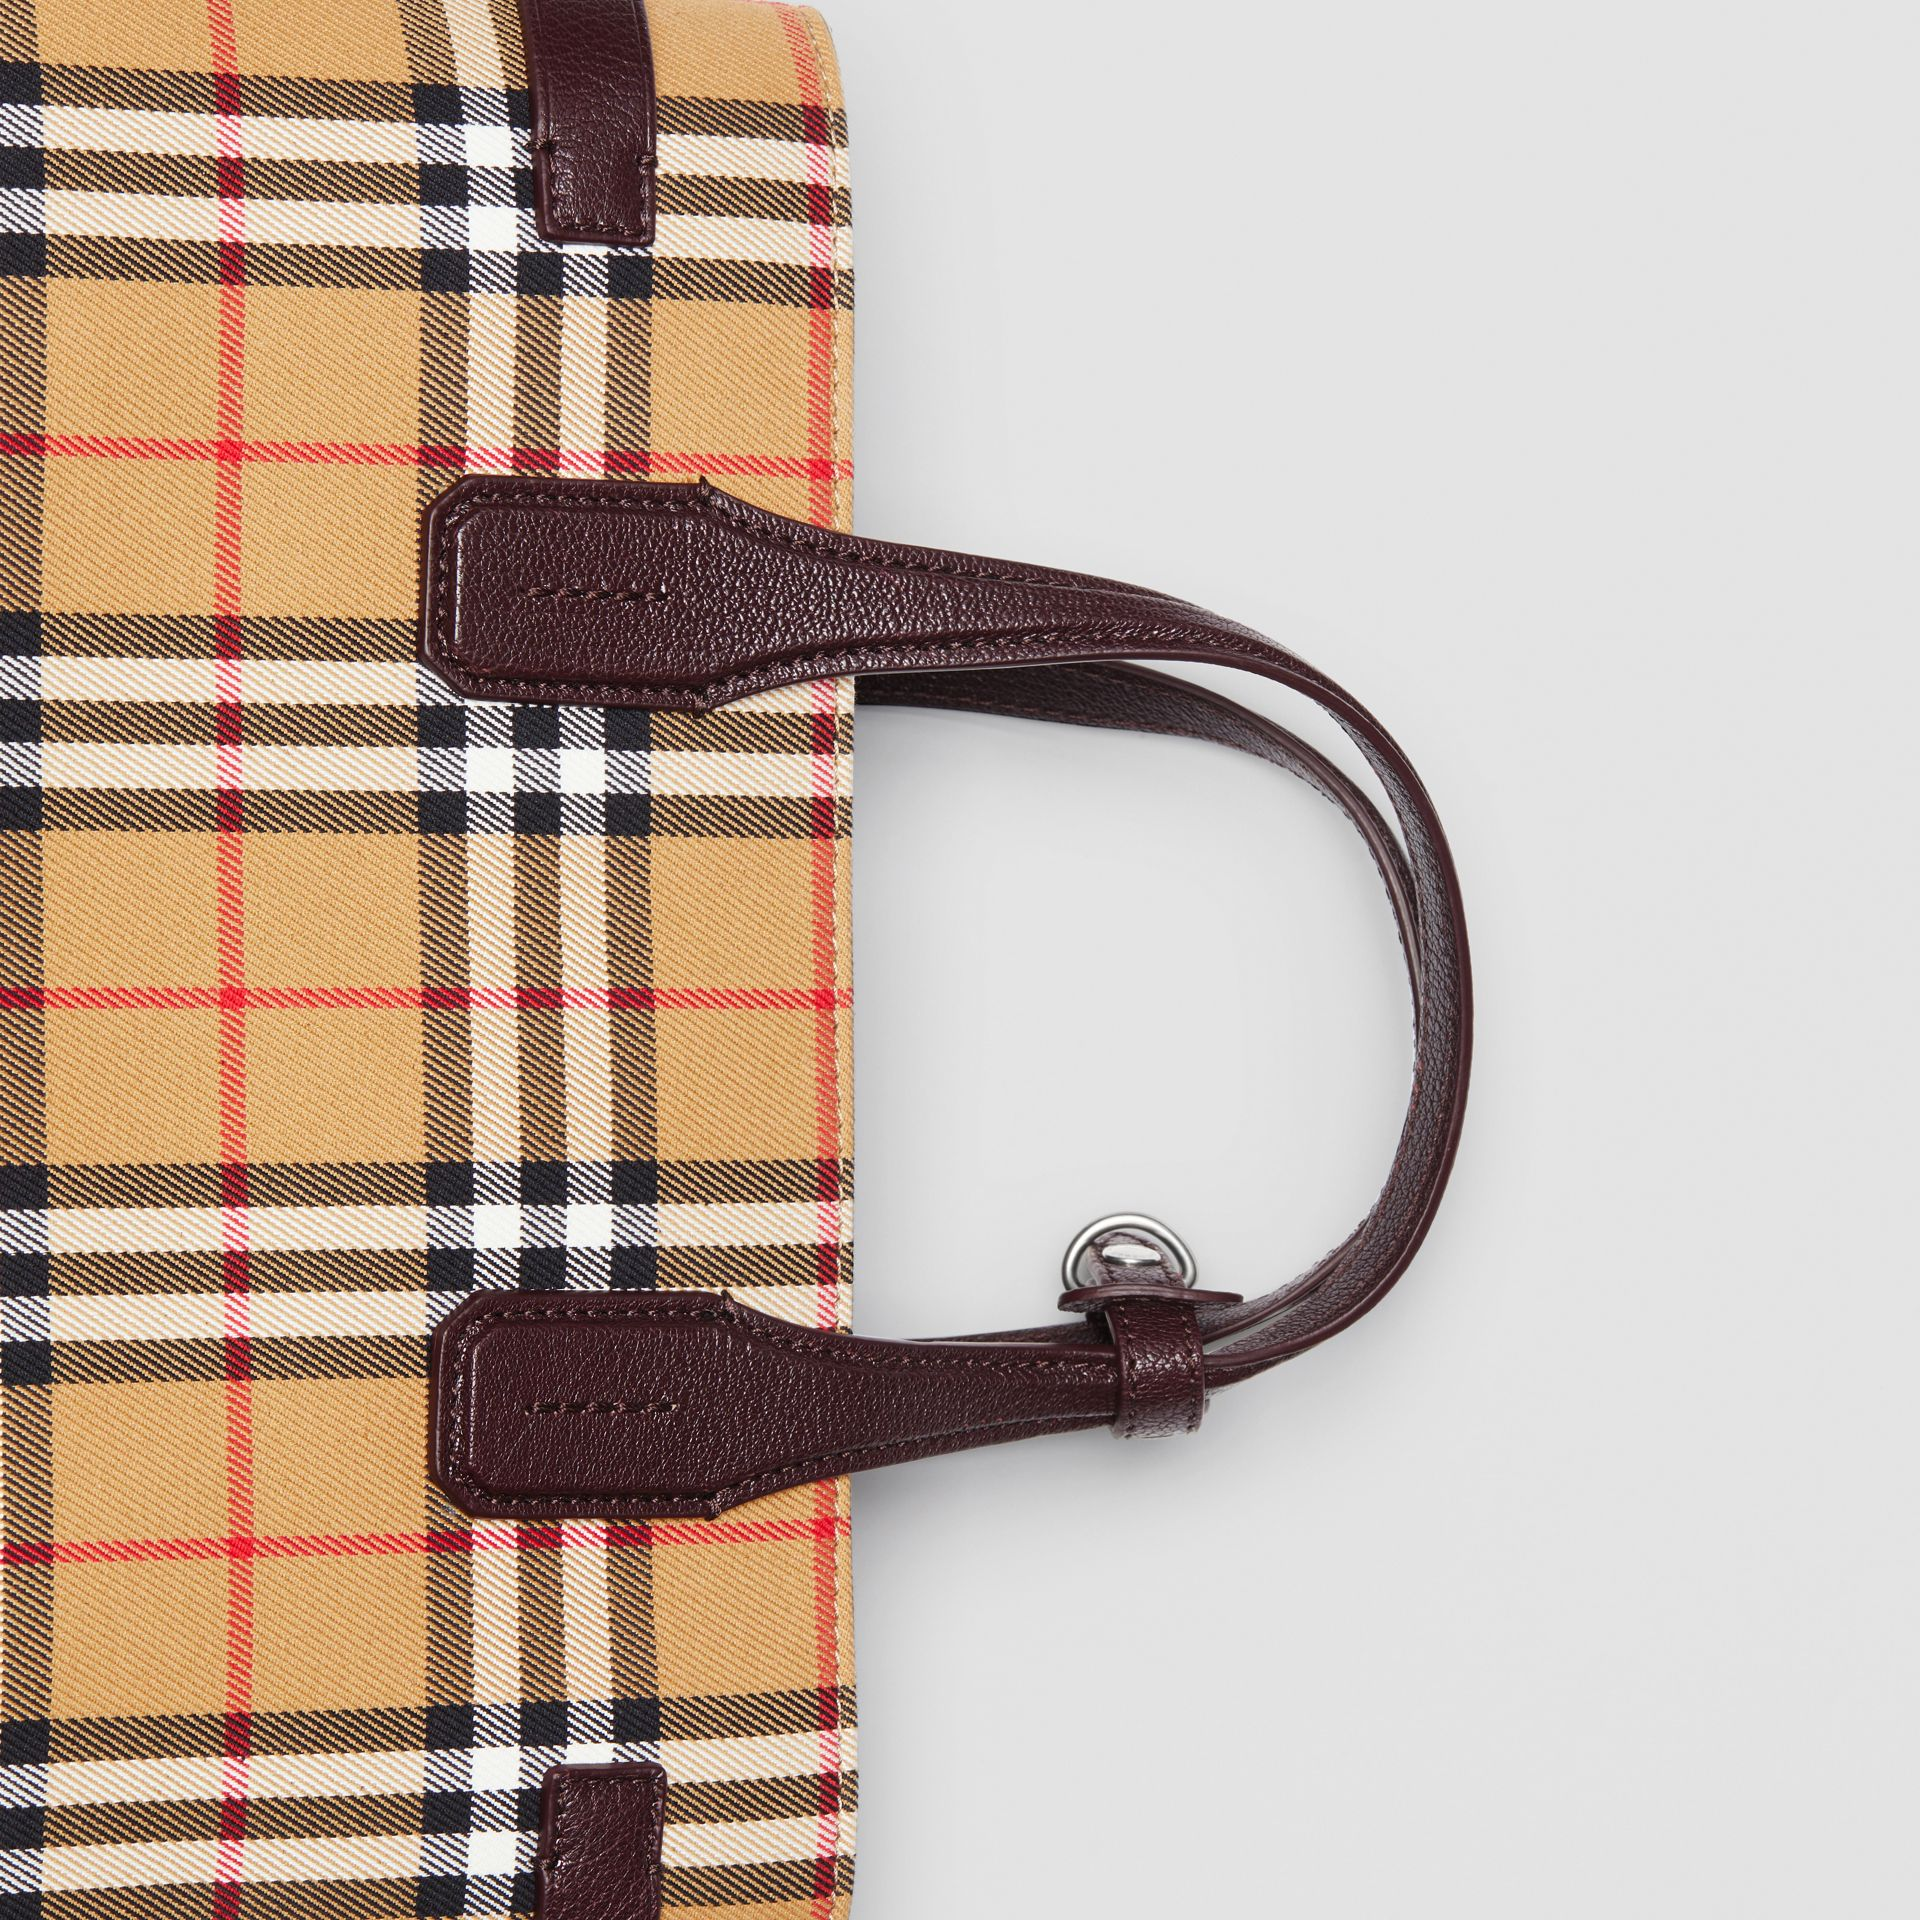 Sac The Banner moyen en cuir et Vintage check (Bordeaux Intense) - Femme | Burberry - photo de la galerie 1